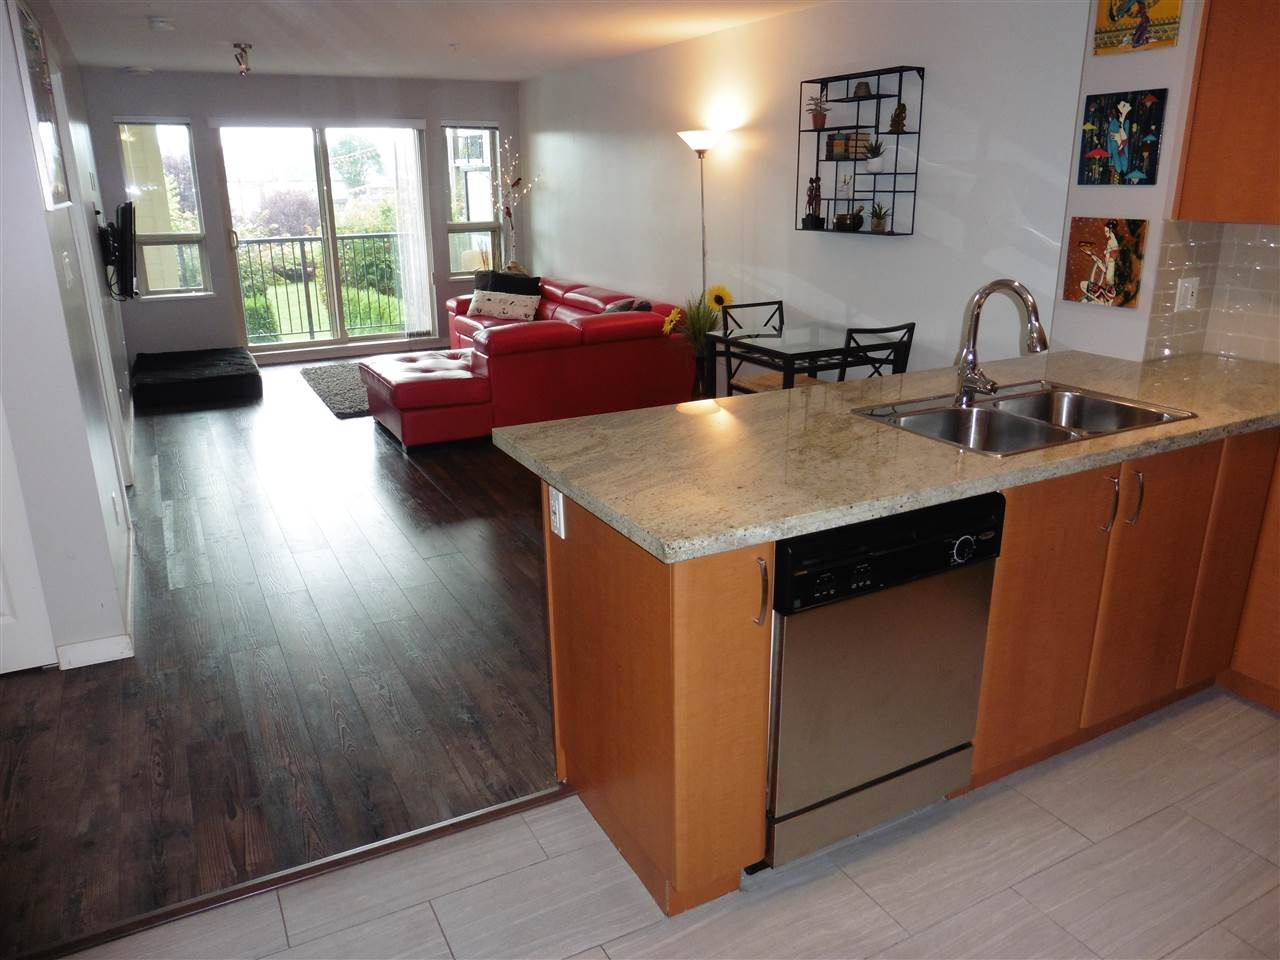 """Main Photo: 218 4728 DAWSON Street in Burnaby: Brentwood Park Condo for sale in """"MONTAGE"""" (Burnaby North)  : MLS®# R2305666"""